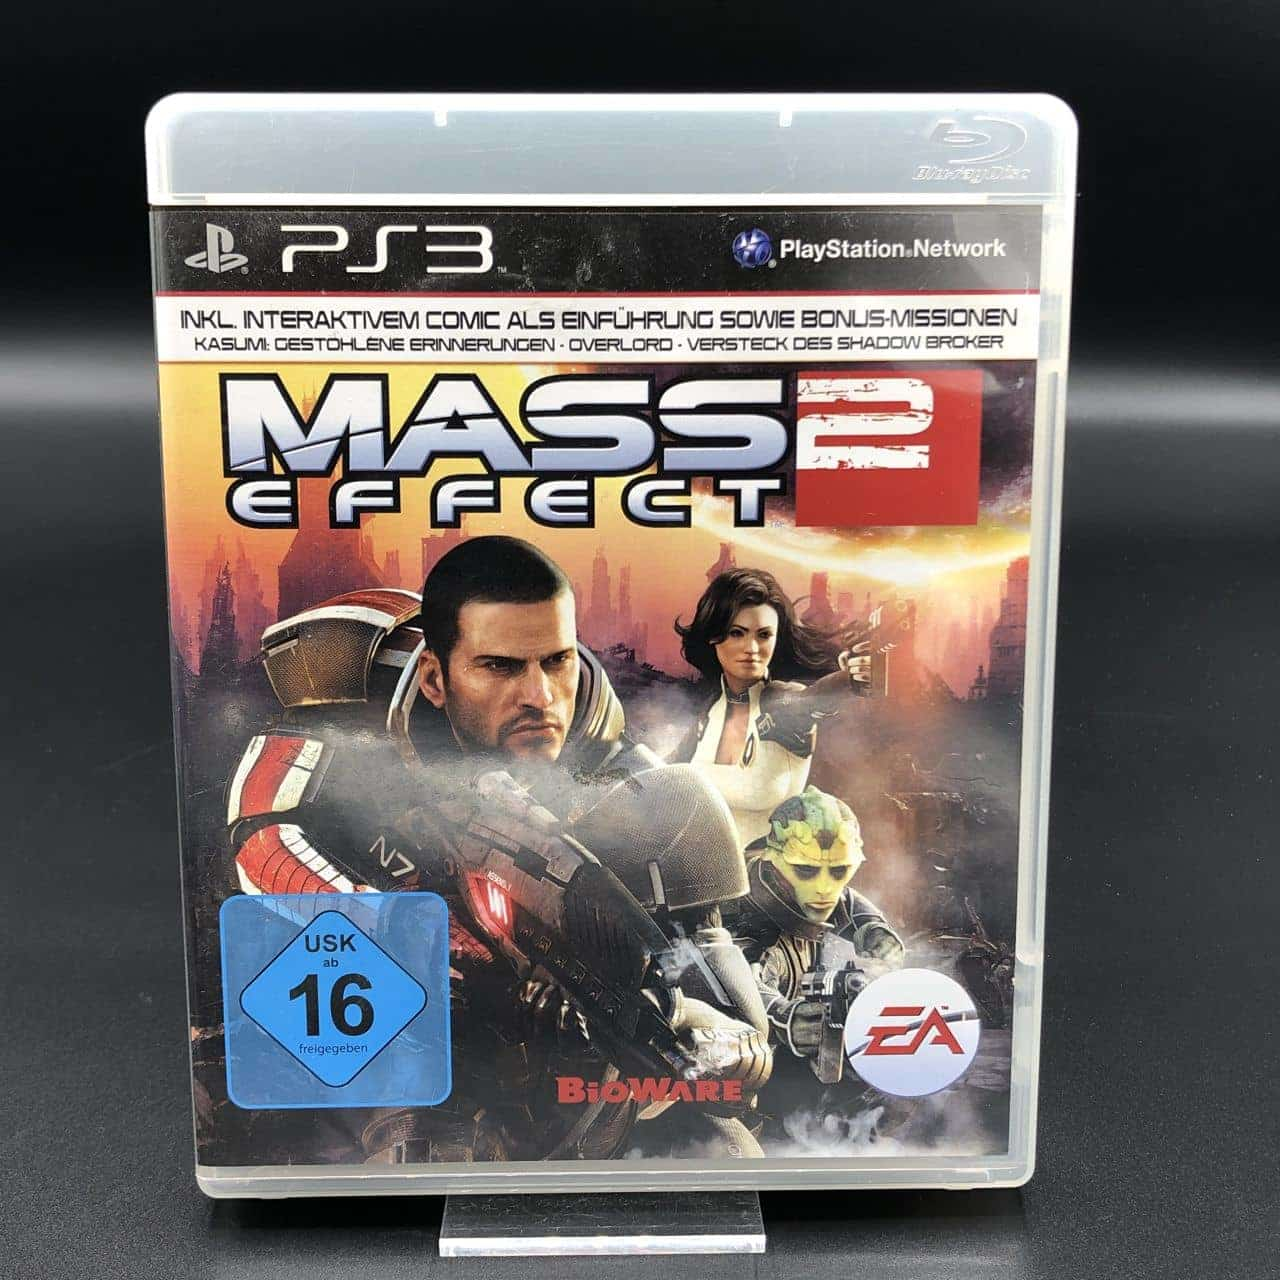 PS3 Mass Effect 2 (ohne Anleitung) (Sehr gut) Sony PlayStation 3